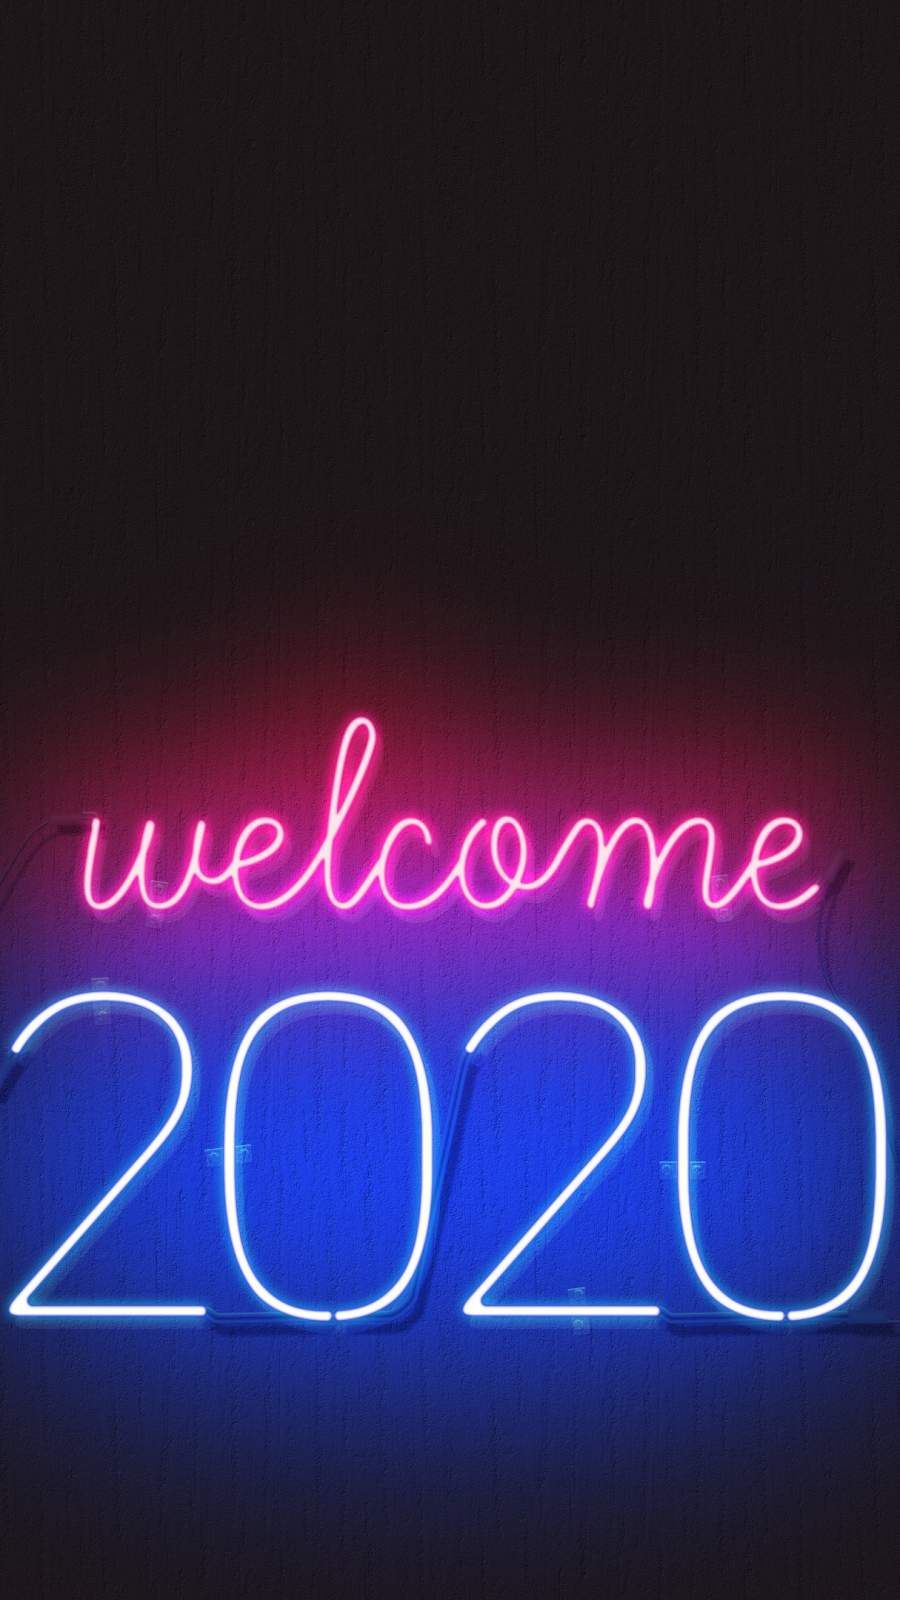 Download Welcome 2020 Happy New year Mobile Wallpaper for your 900x1600